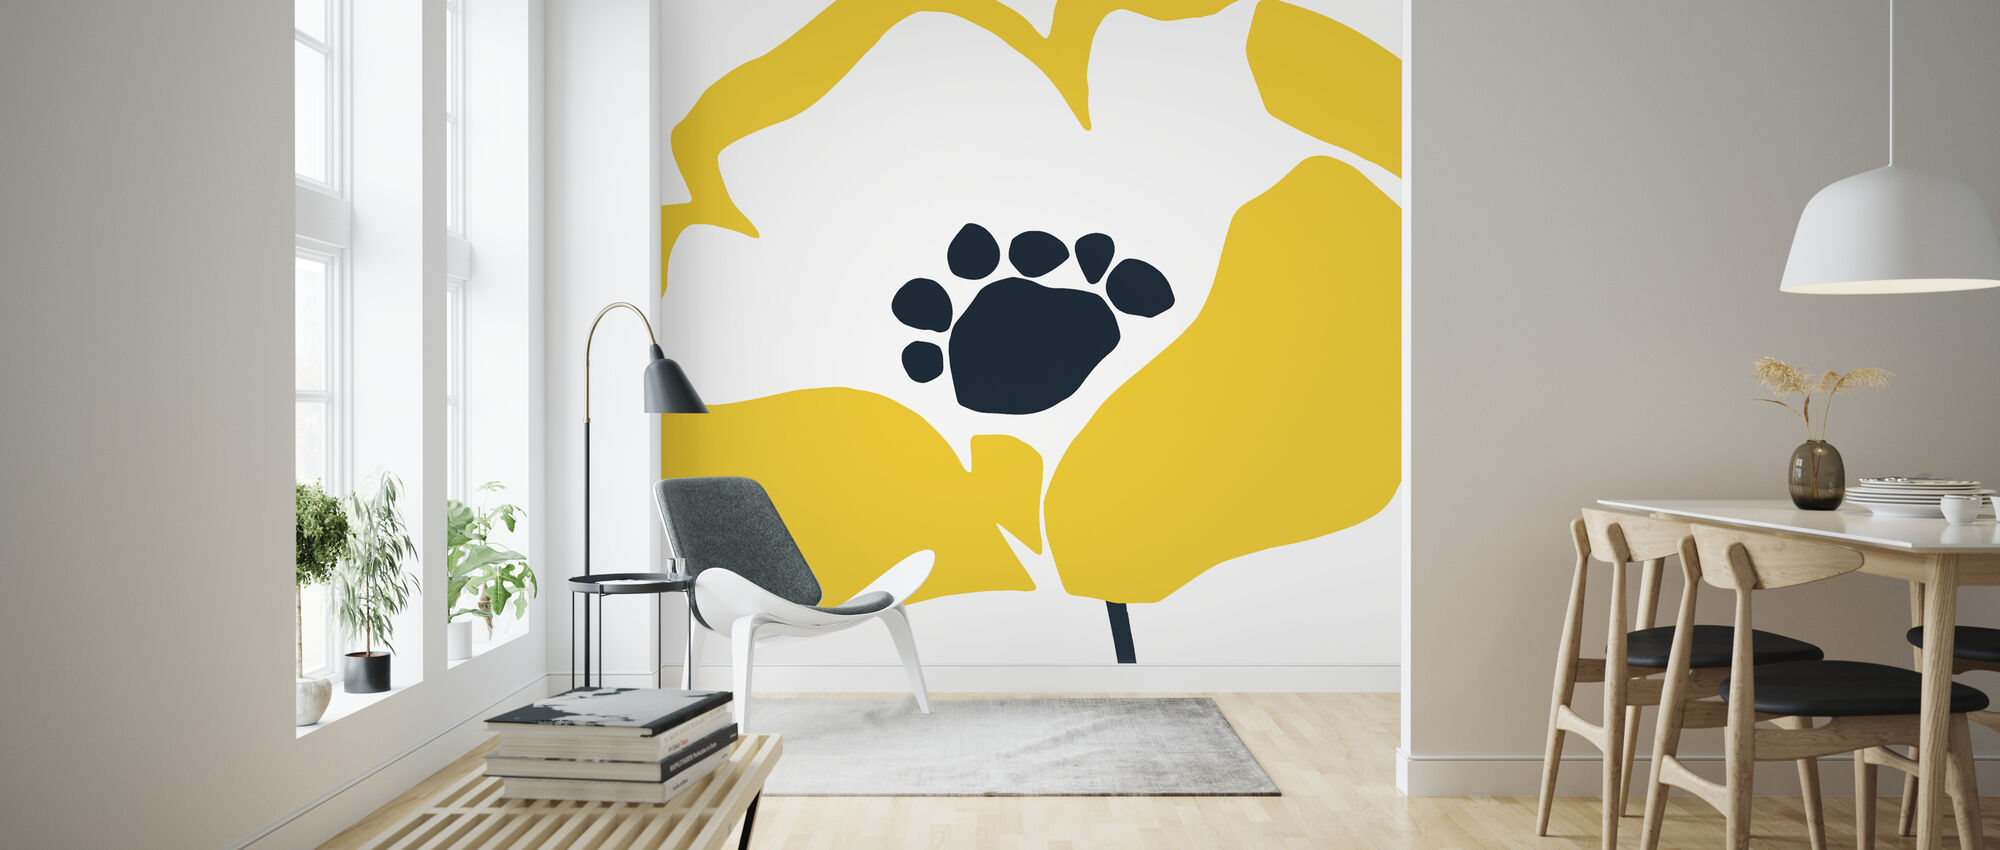 Pop Art Floral II - Wallpaper - Living Room